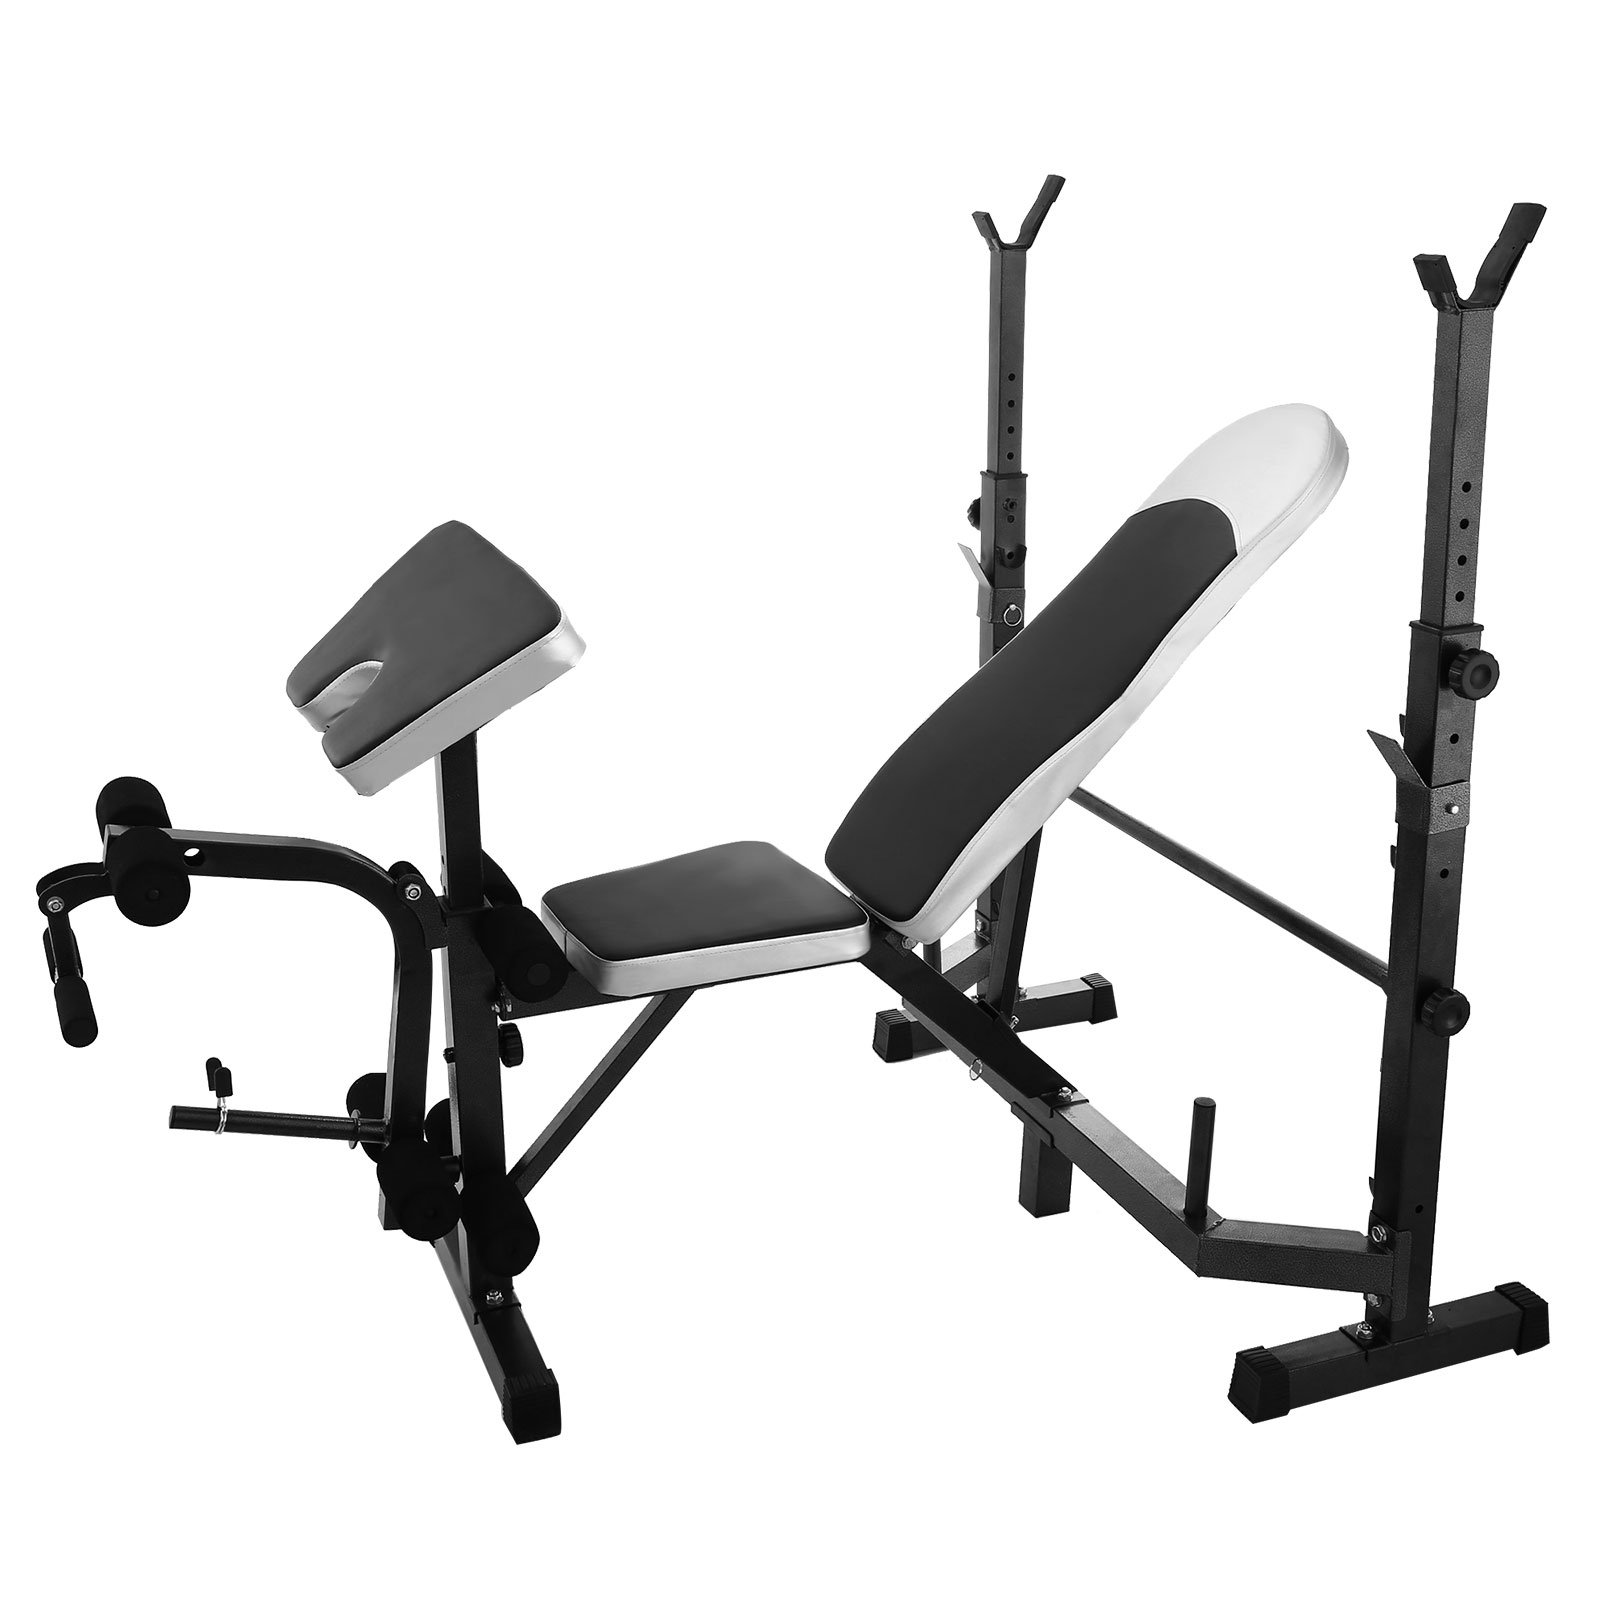 Popsport 660LBS Weight Lifting Bench Multi Station Weight Bench Press Leg Curl Home Gym Weights Equipment Adjustable Workout Bench for Home Fitness